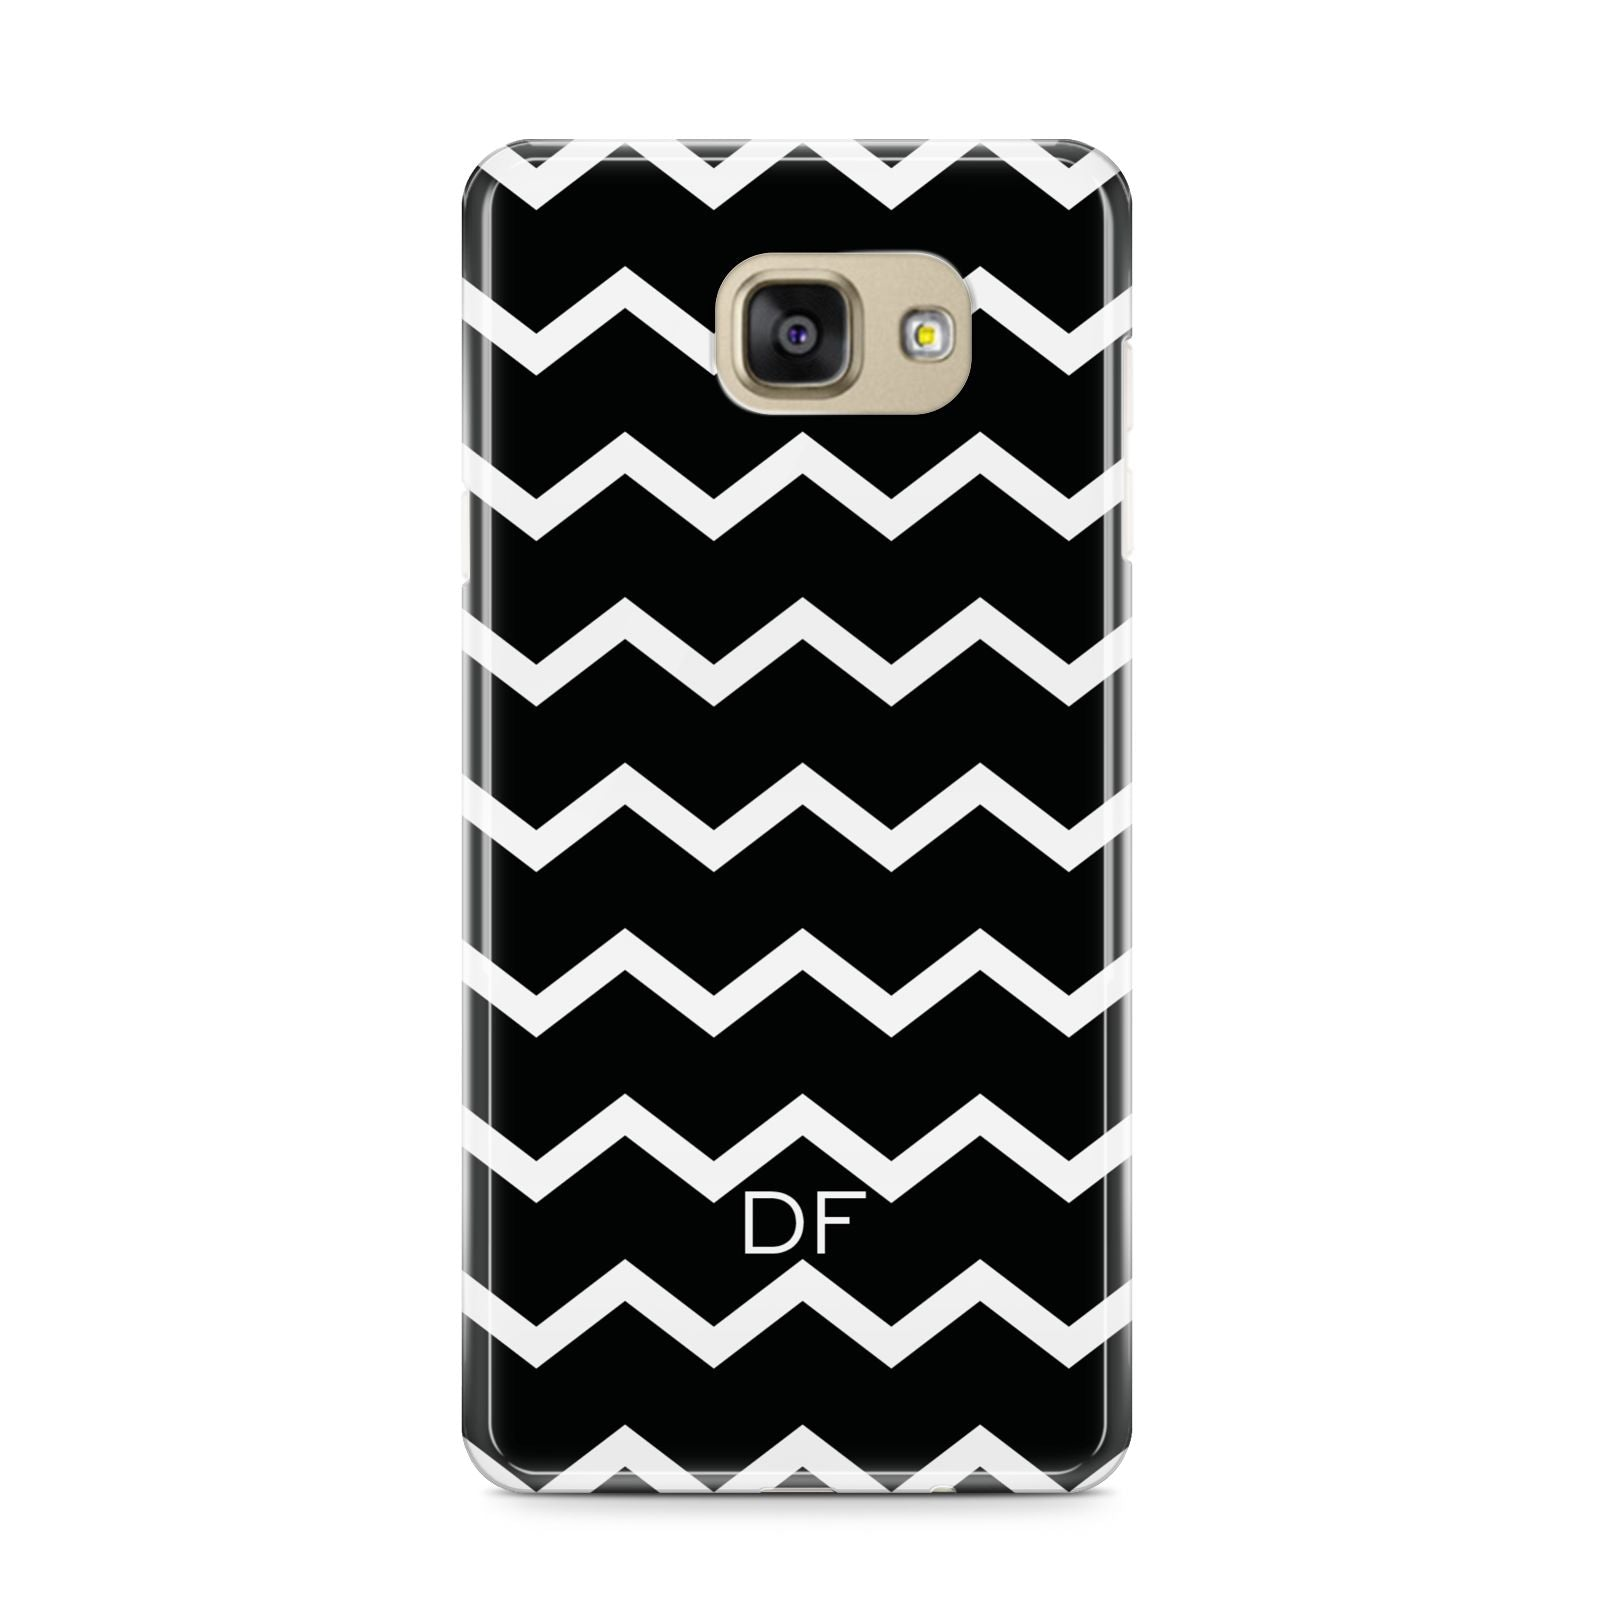 Personalised Chevron Black Samsung Galaxy A9 2016 Case on gold phone